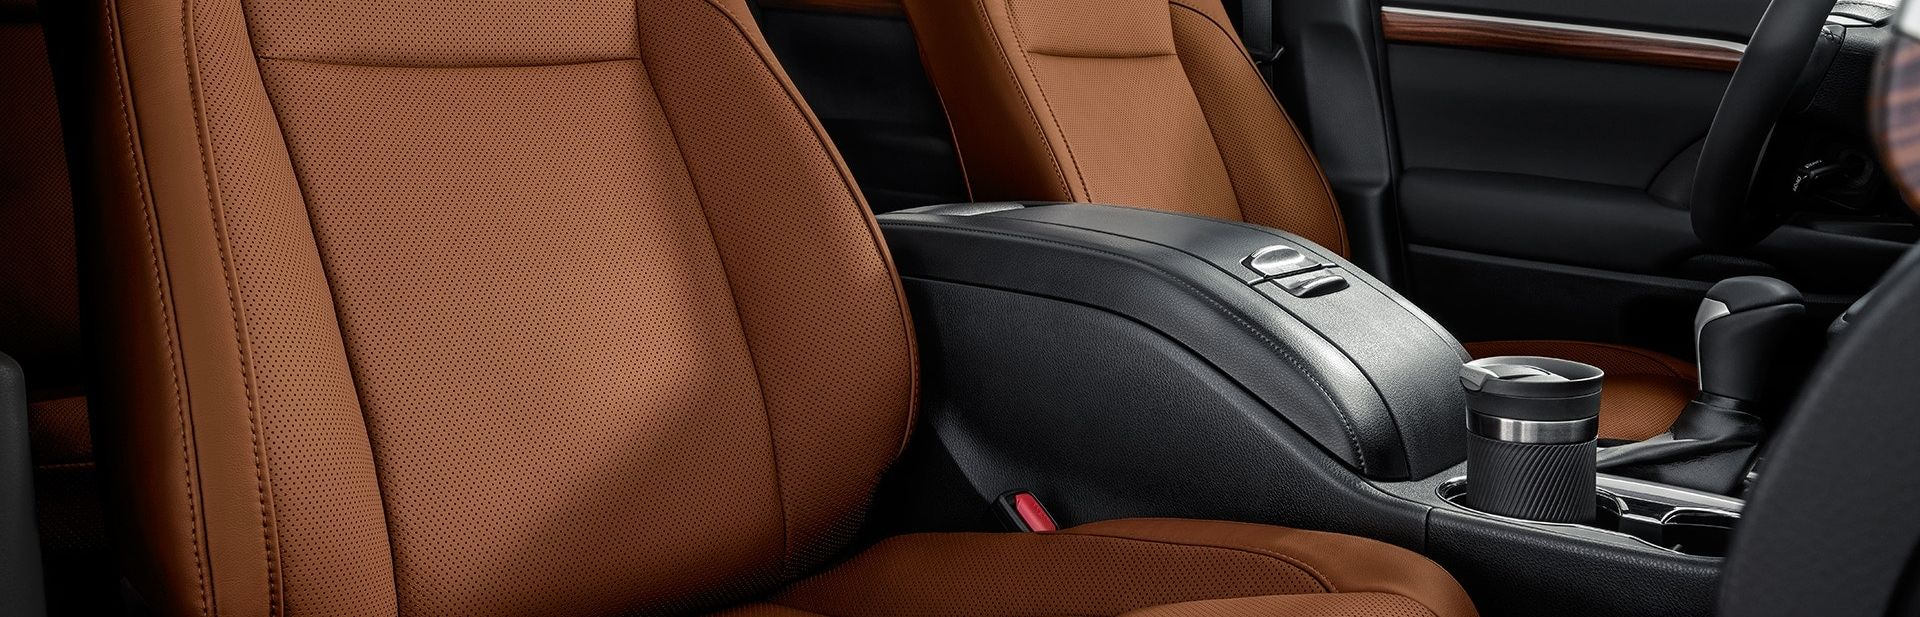 2019 Toyota Highlander's Luxurious Interior